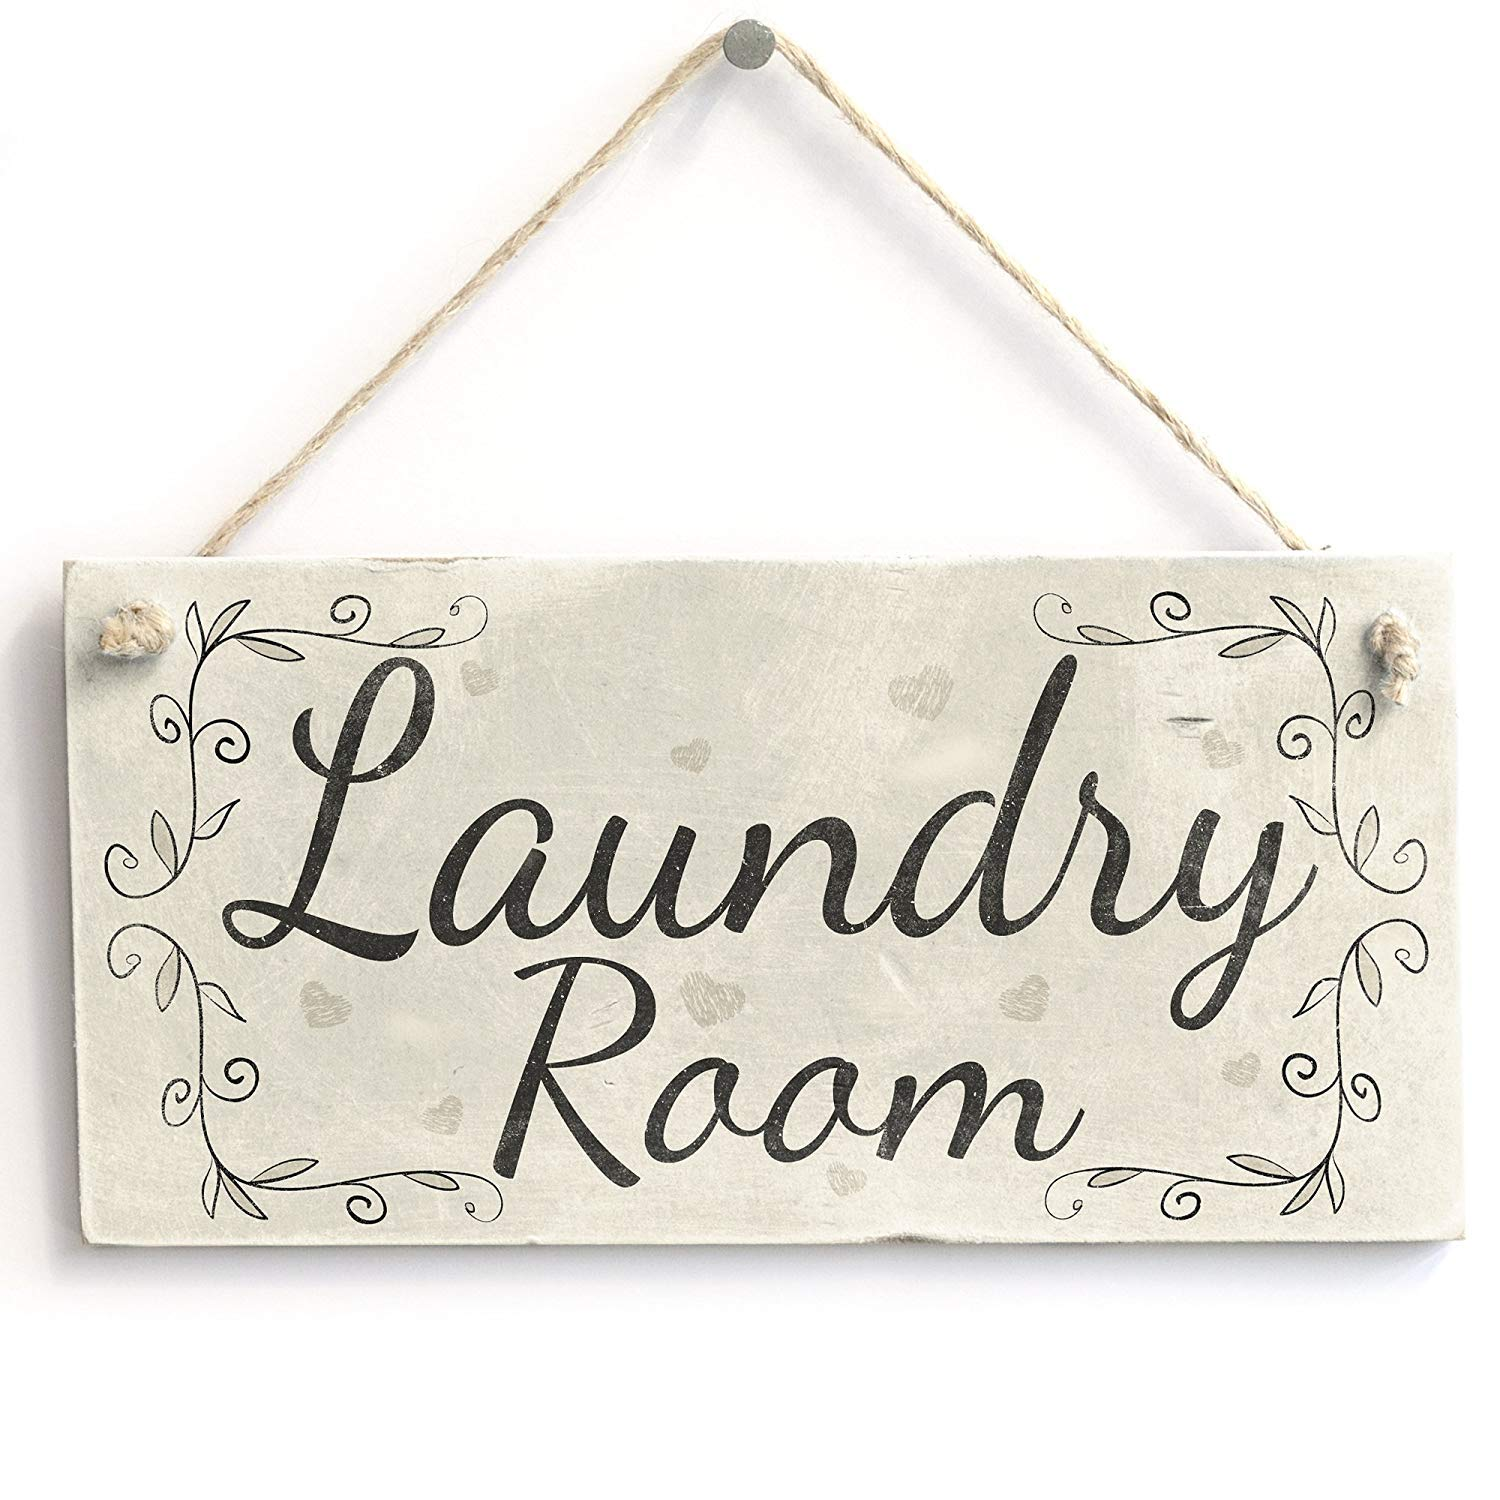 Amazon.com: LOUISF Laundry Room - Handmade Rustic Country ...